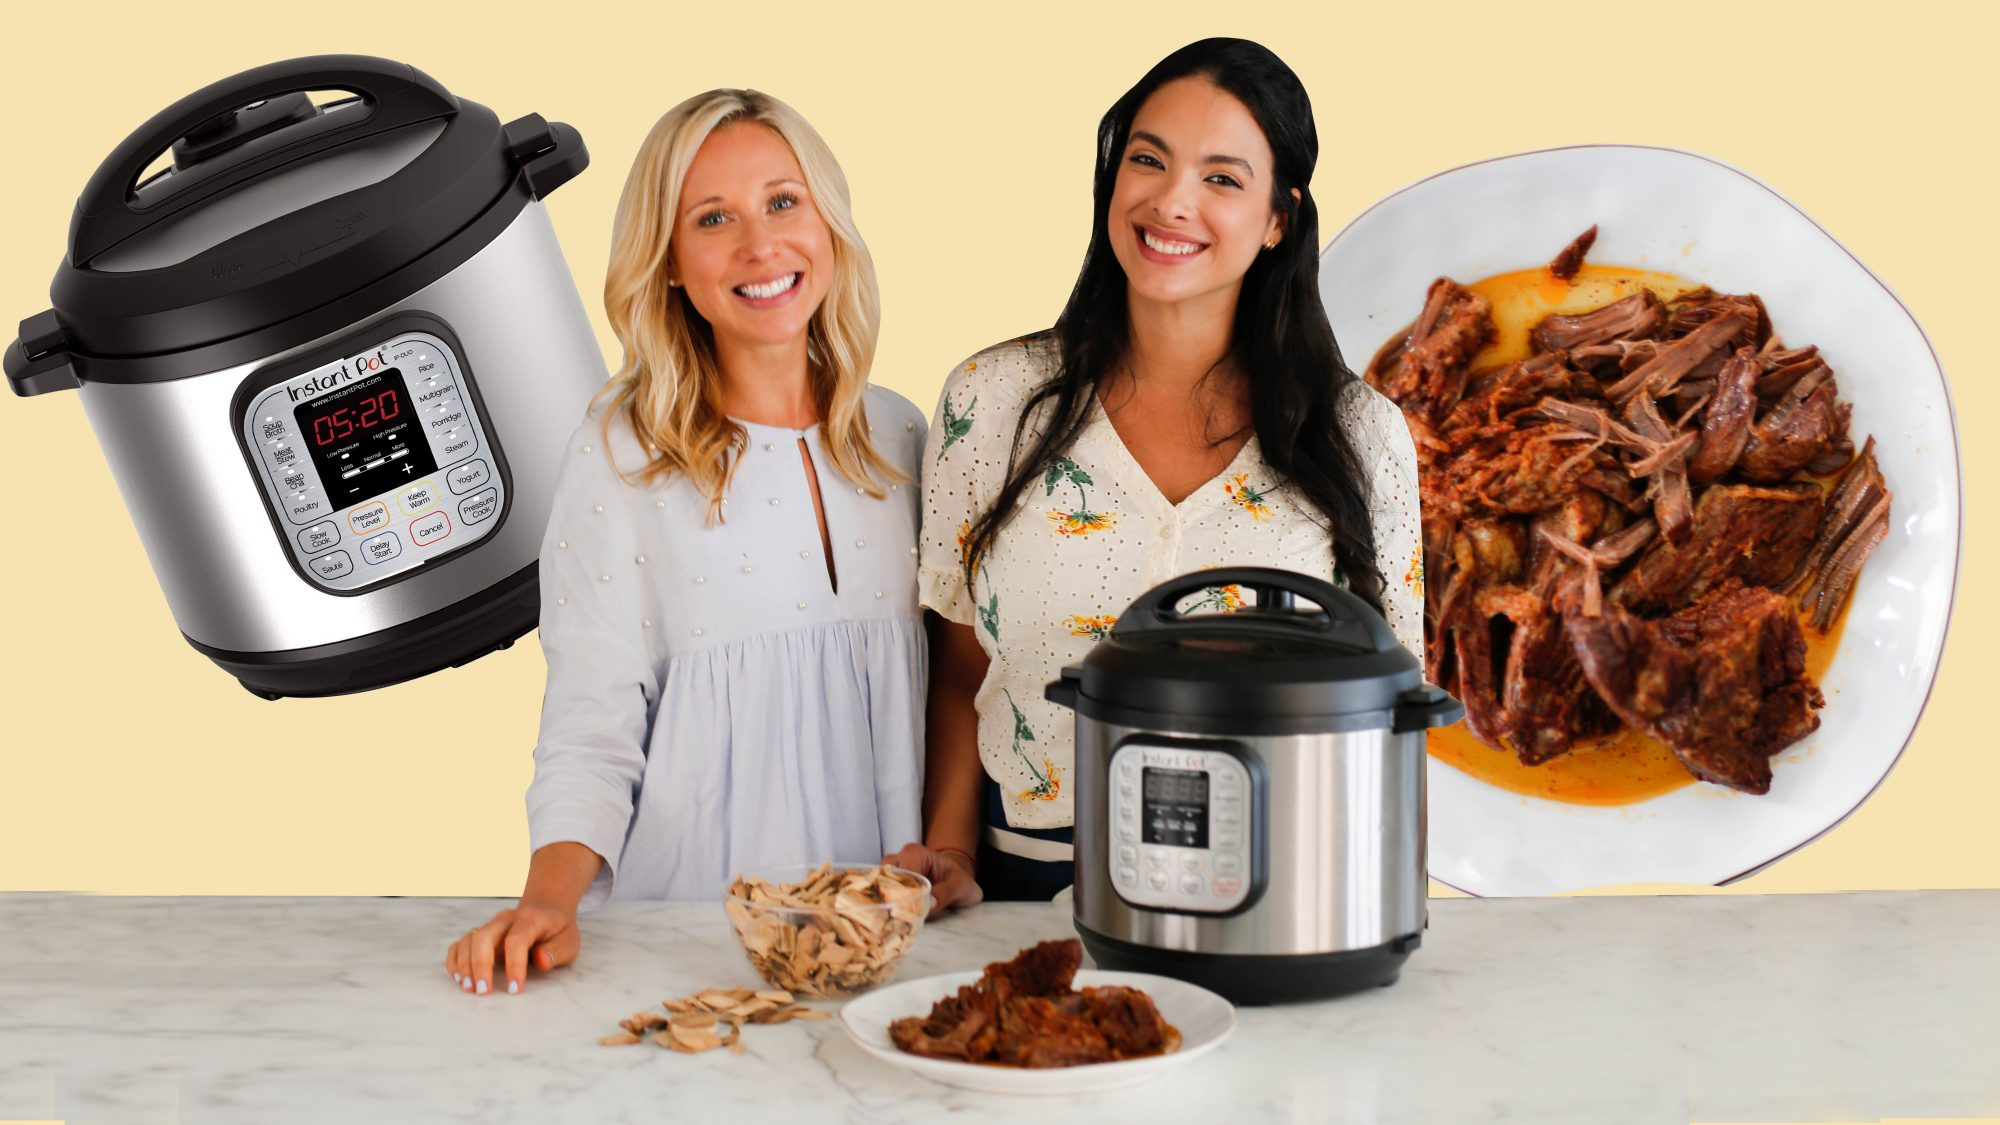 Does Your Instant Pot Double as a Smoker?